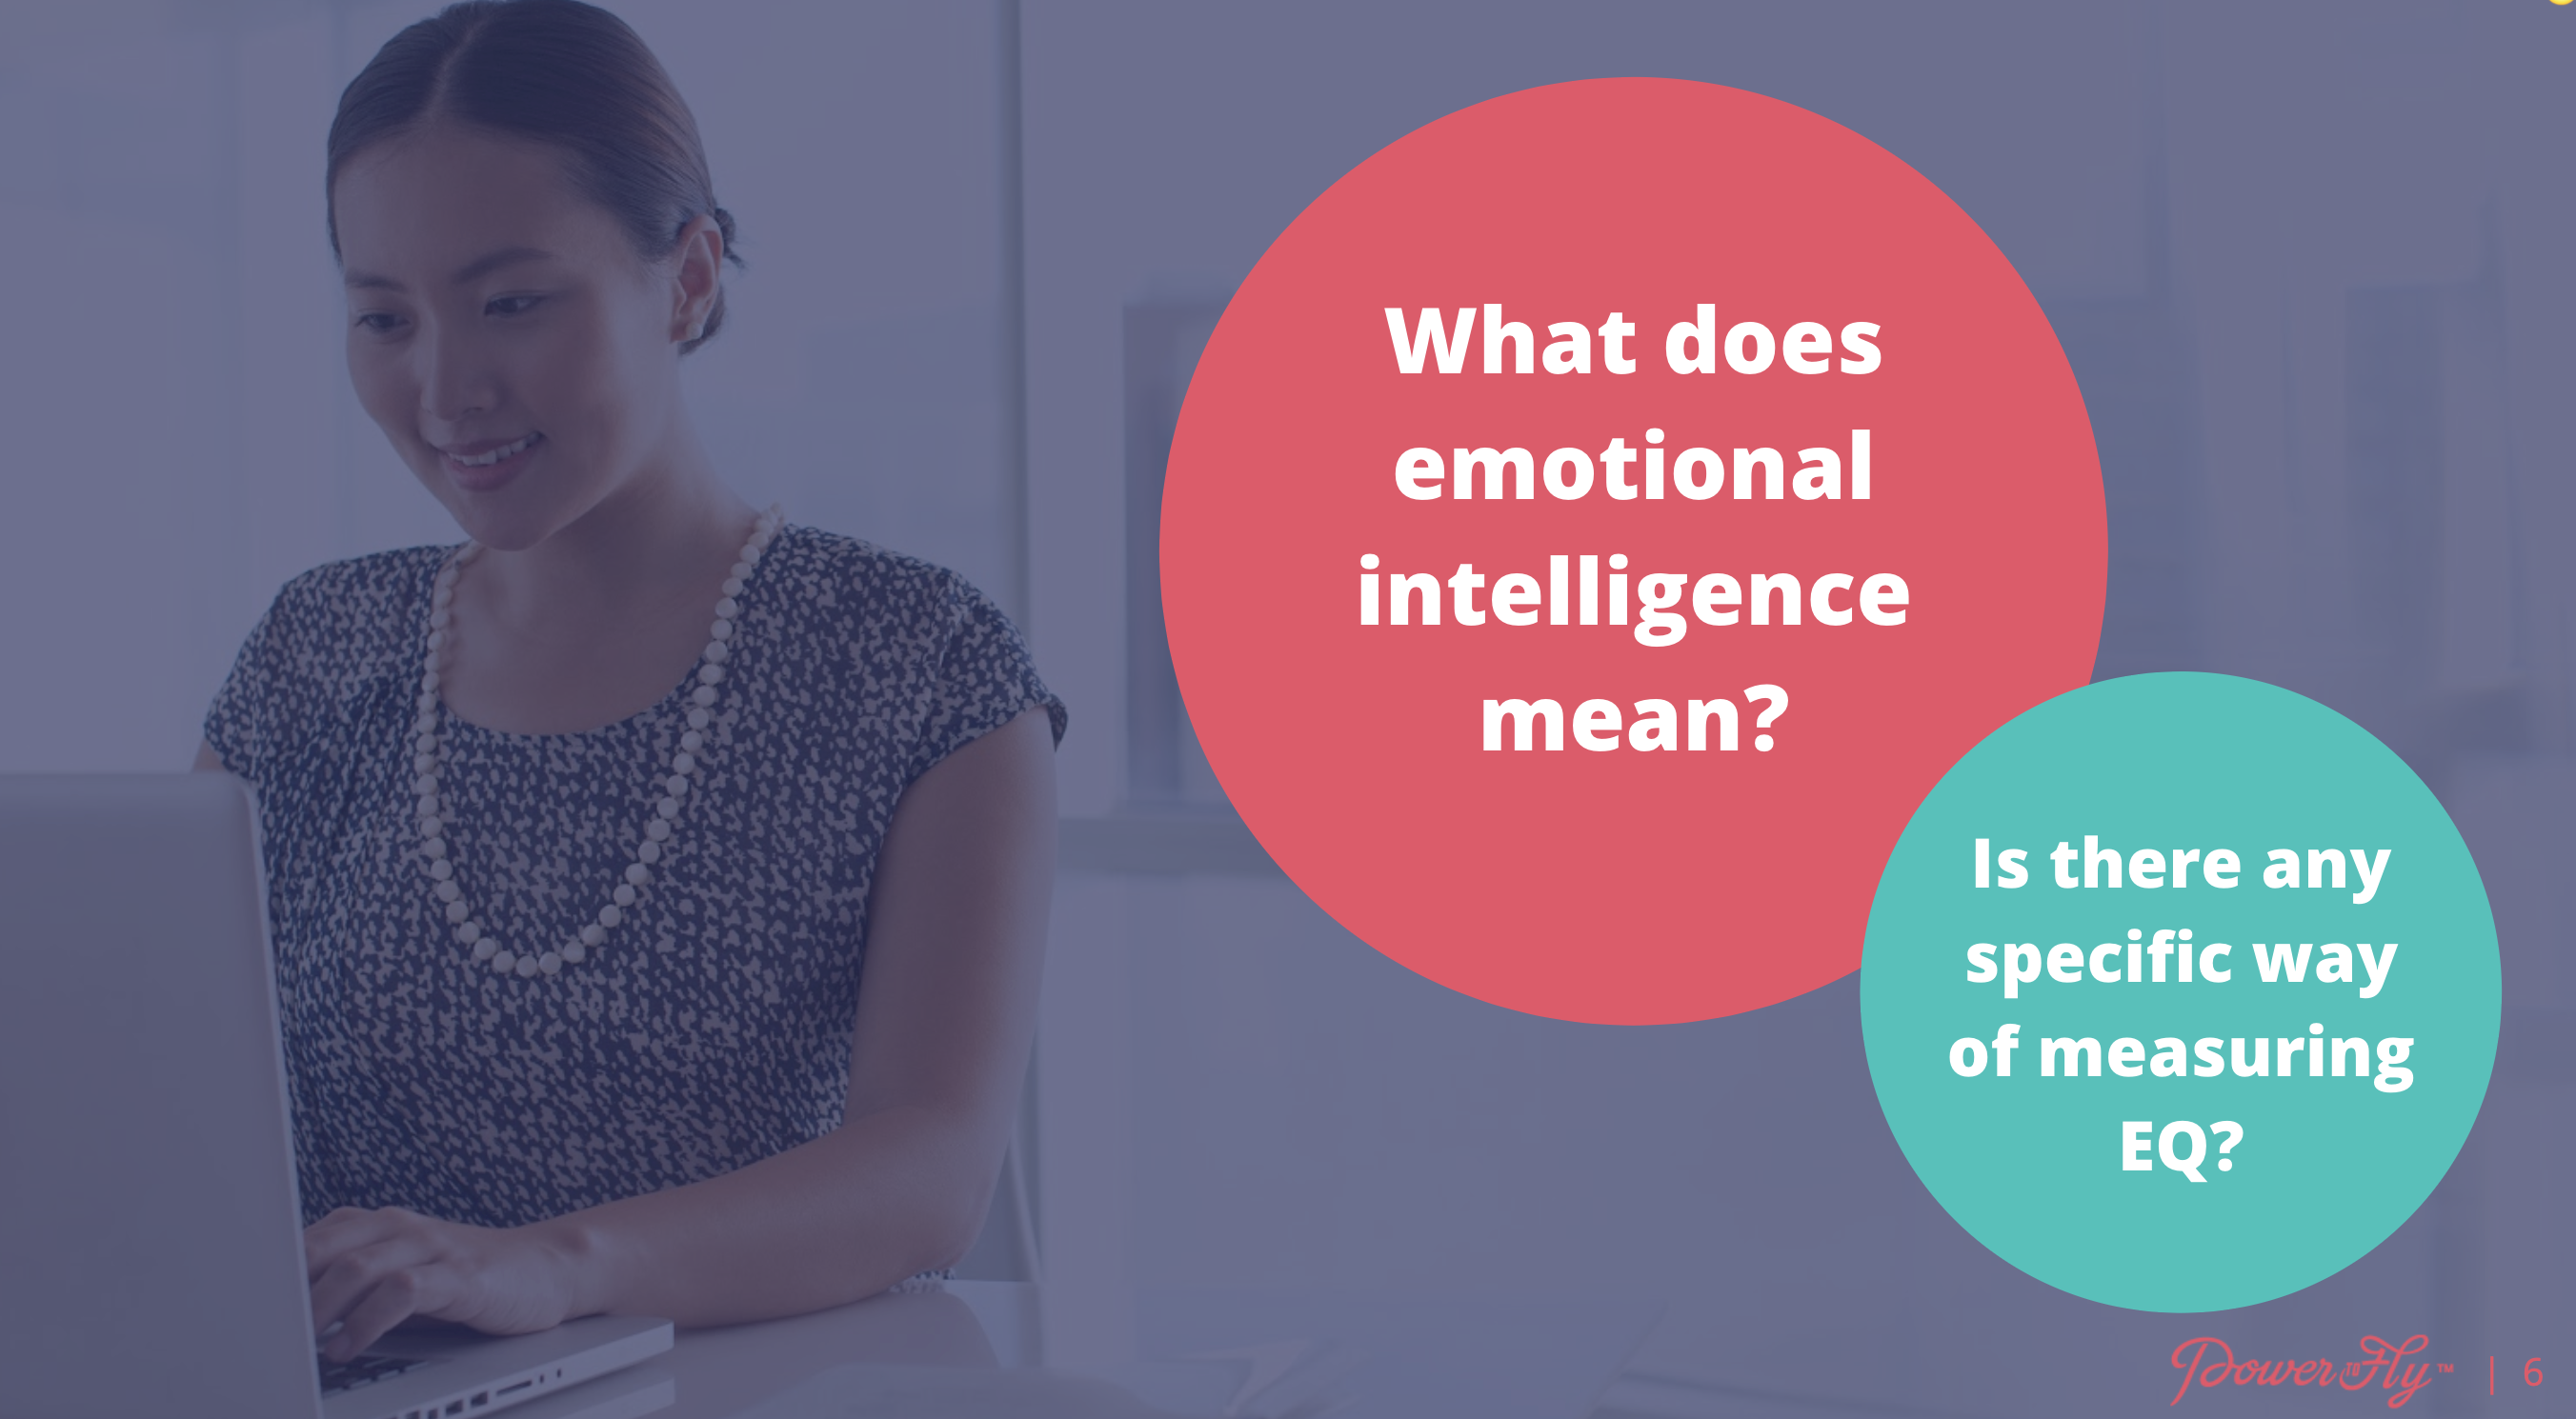 How do you help develop someone's emotional intelligence who has little self-awareness?